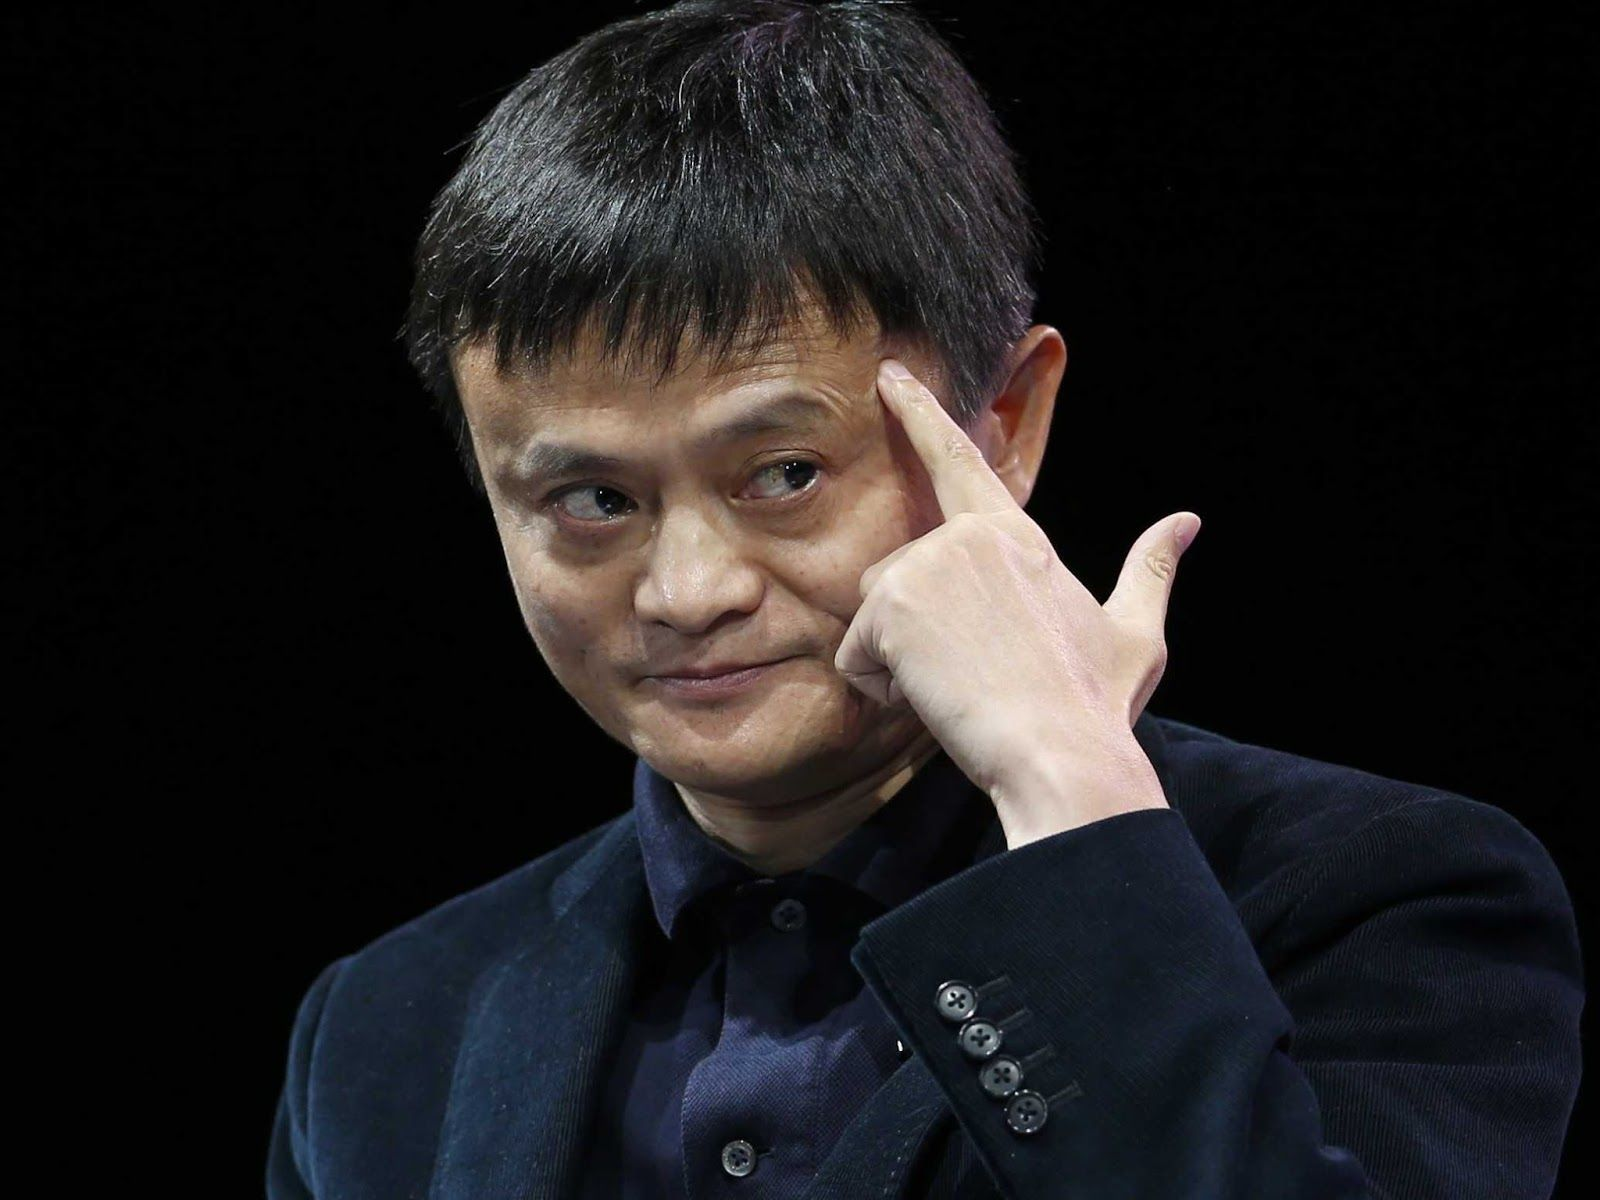 JACK MA AND HIS SPIRITUAL SPEECH Business leader, Jack